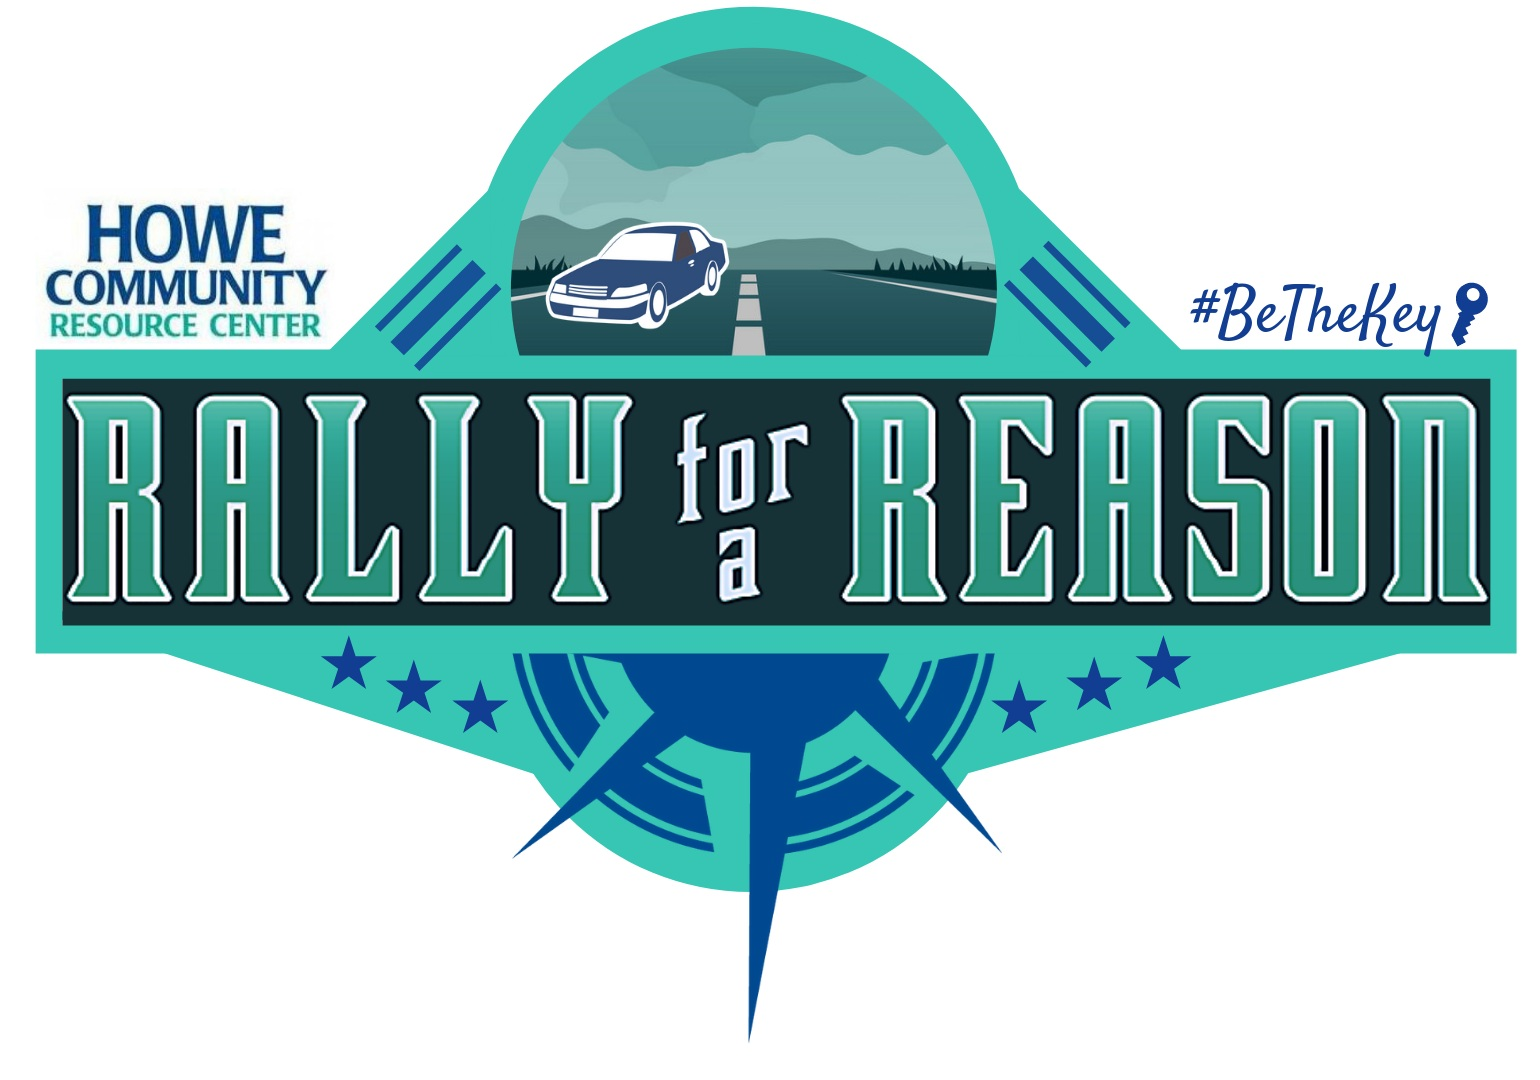 """Rally for a Reason - We are thrilled to announce that we have set the date and location for our fifth annual Road Rally- April 13, 2019 beginning and ending at Badger State Brewery. We are having blast planning the clues and activities. We hope you have a blast too!Thank you to all those who have supported us in the past - we hope to see you in April! Join us for """"r-wheel-y"""" great time!What is a """"Road Rally""""?A road rally is a scavenger hunt, not a race, via car. Teams of 2 or more individuals will receive a list of clues that bring them to various stops around Brown County. Each stop has a point value and the team with the most points wins a cash prize.All proceeds from Rally for a Reason go directly to the support of Howe School and our parenting program.Visit this page often for updates about sponsors and giveaways!"""